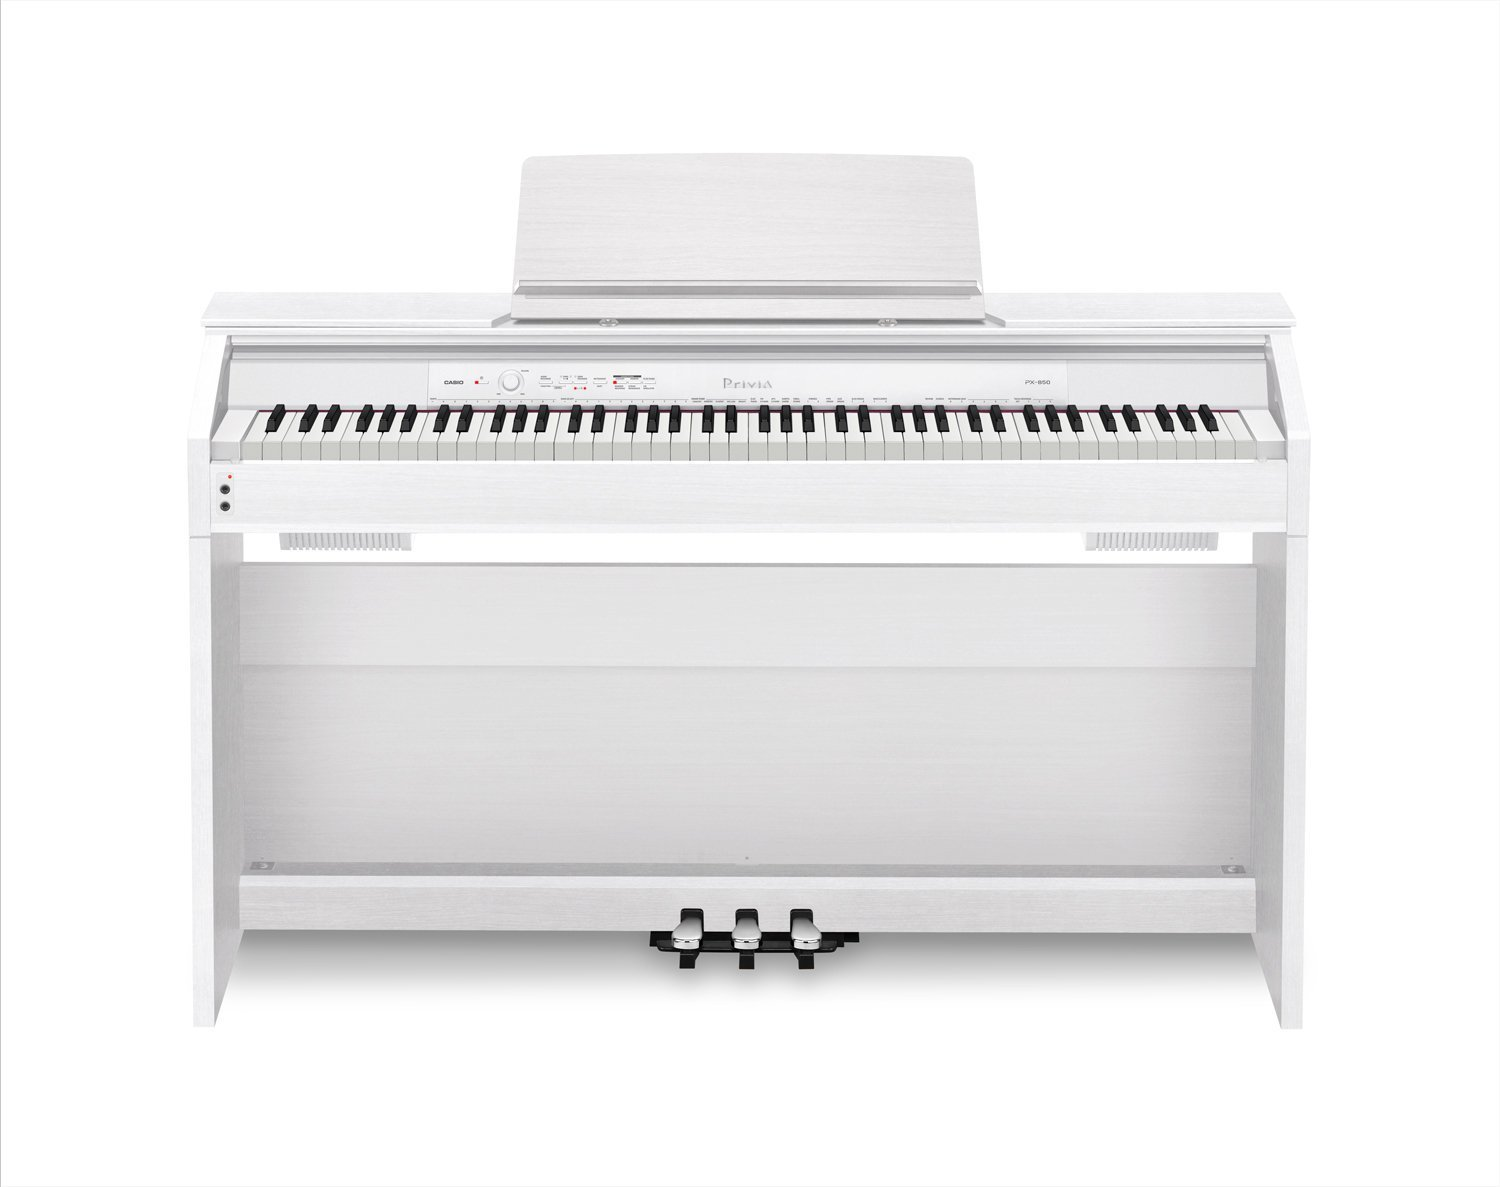 Top 25 Best Digital Piano Reviews & Buying Guide 2018 {Tested Pianos)